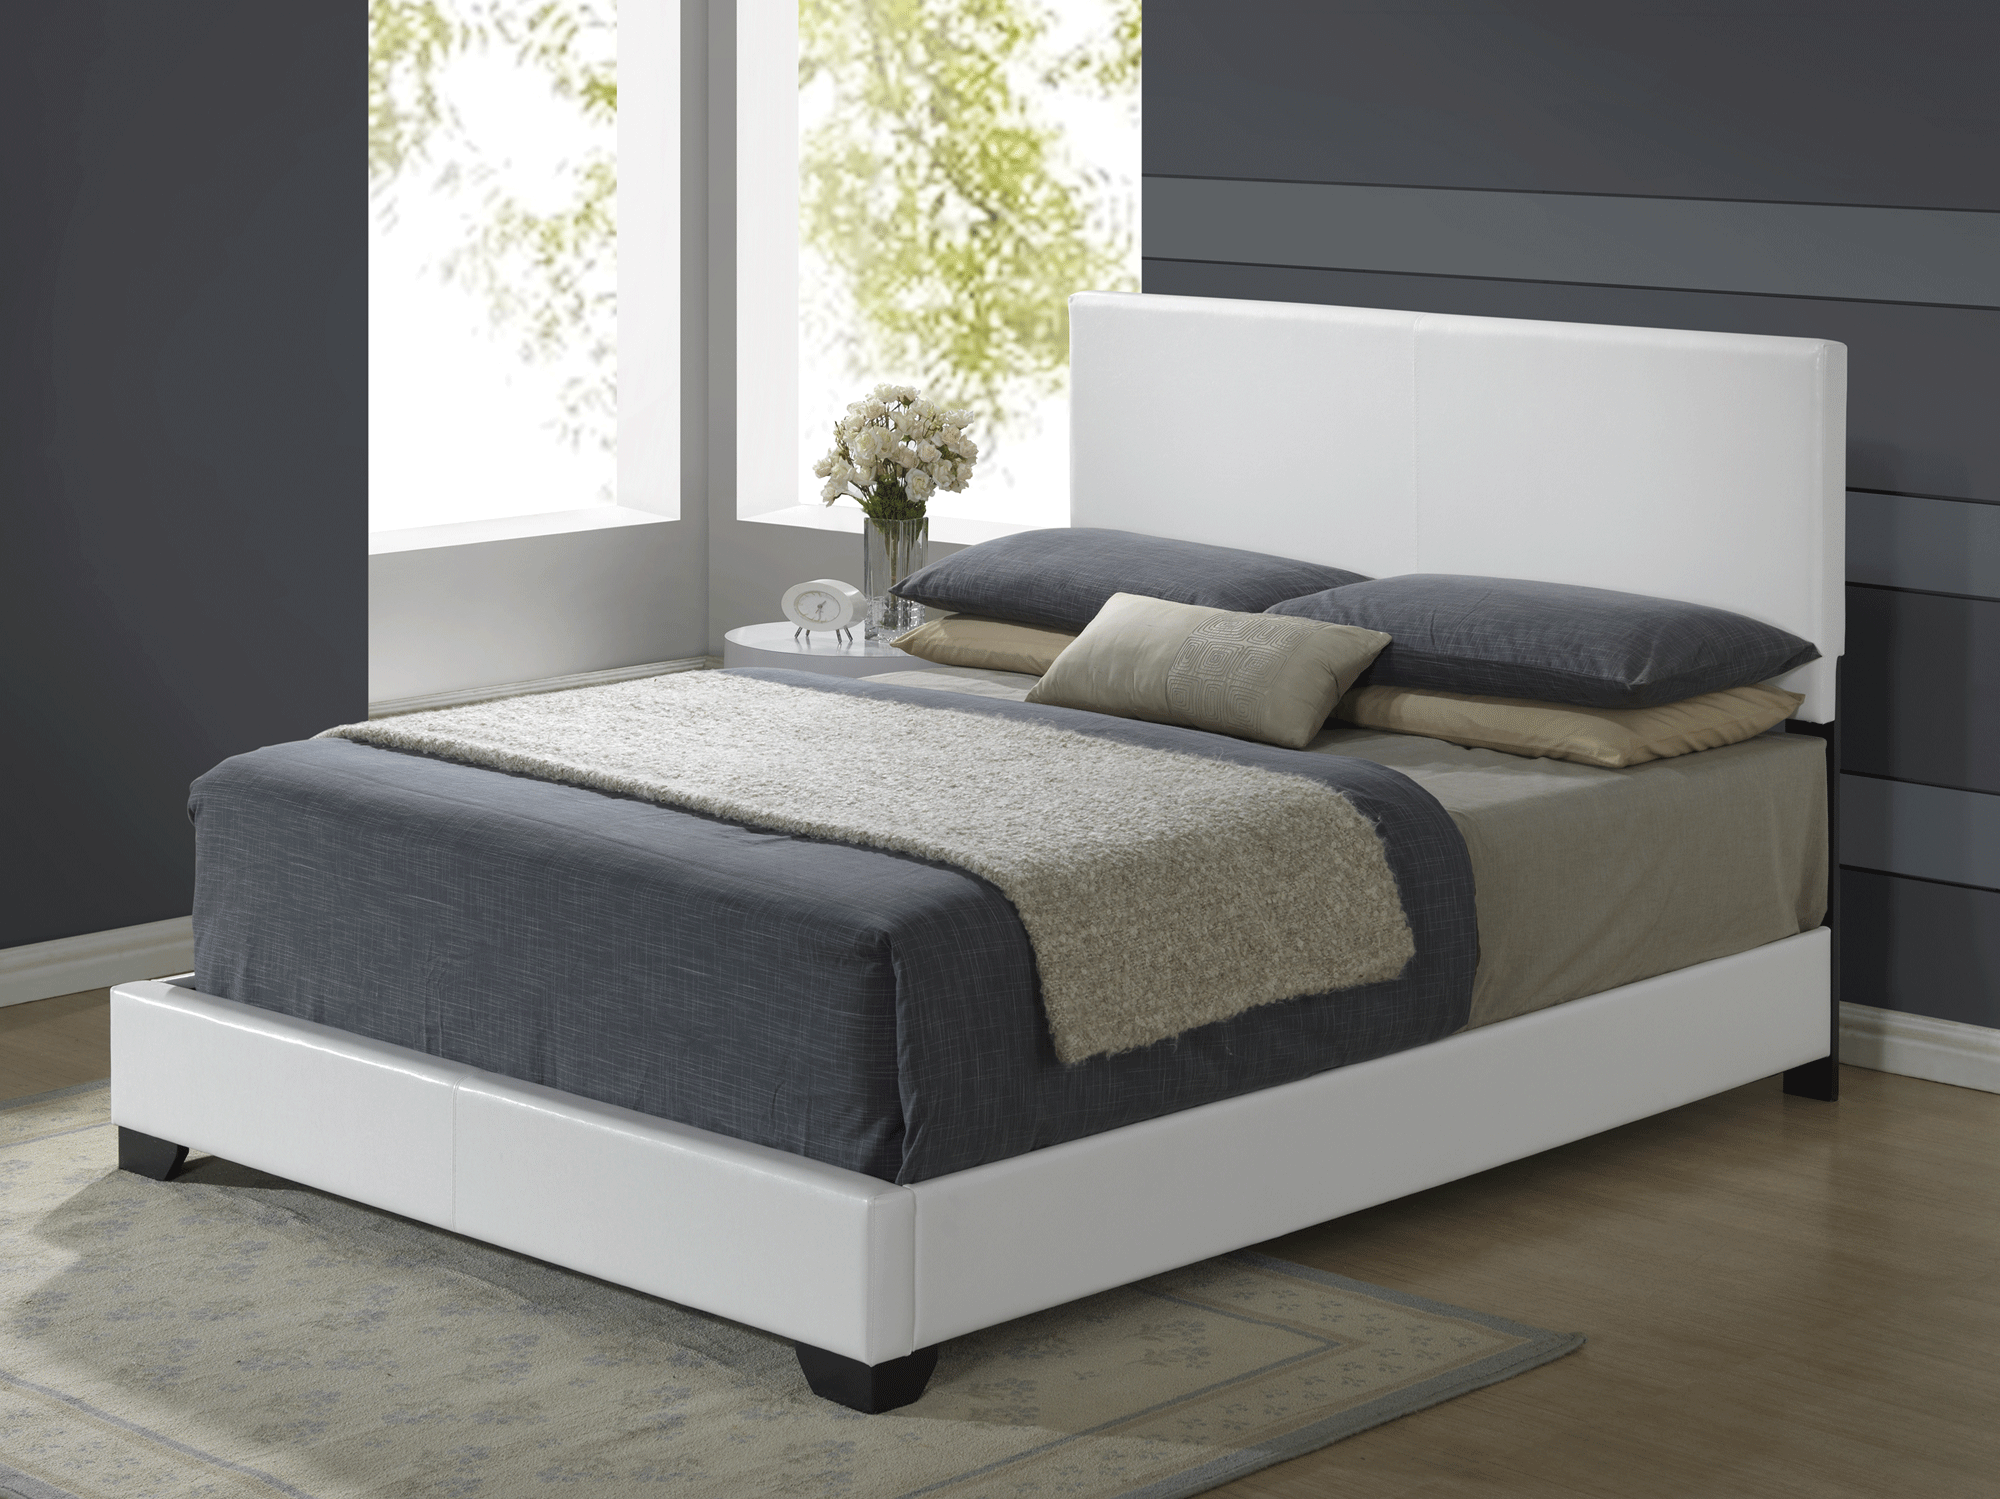 Aurora White Glossy Bedroom Set (w/8103 Grey PU Bed) by Global Furniture